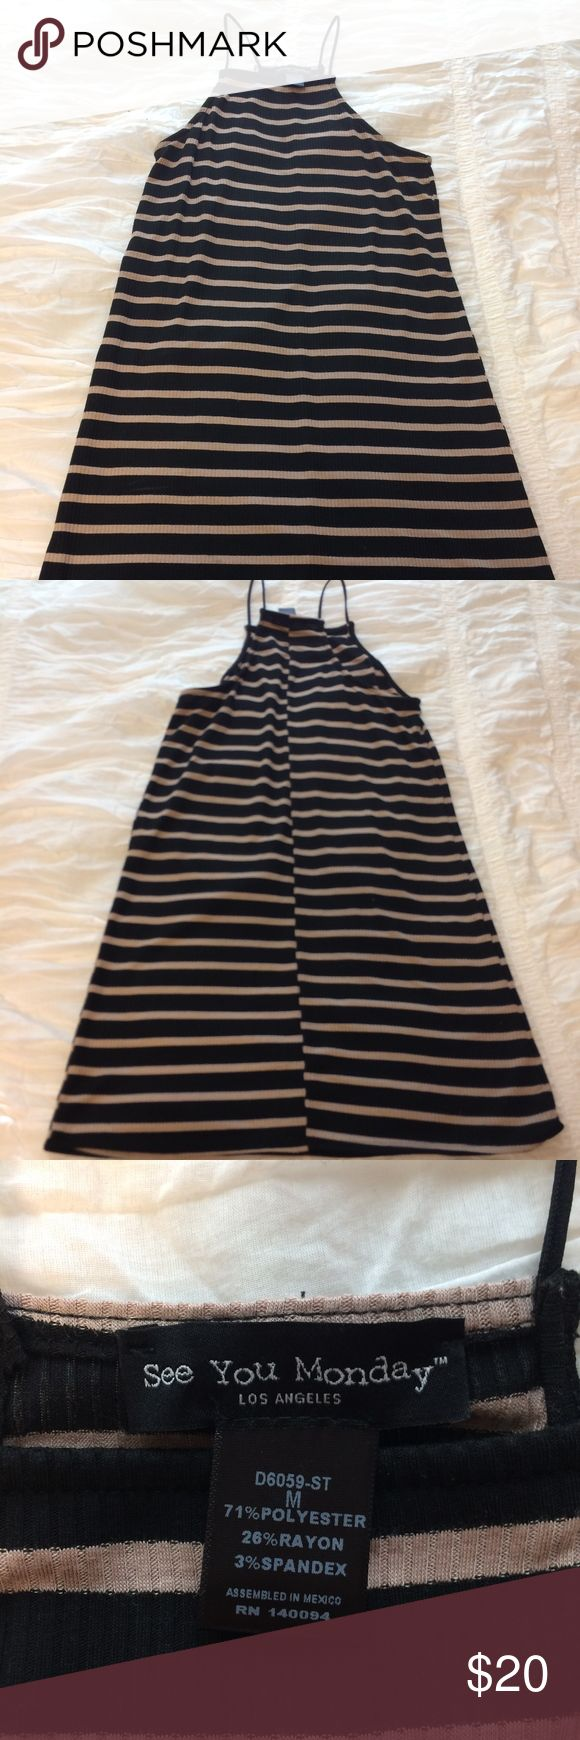 NWOT See You Monday Striped Bodycon Mini Dress Never been worn (without tags) black + tan striped, body con, mini dress from See You Monday! See You Monday Dresses Mini